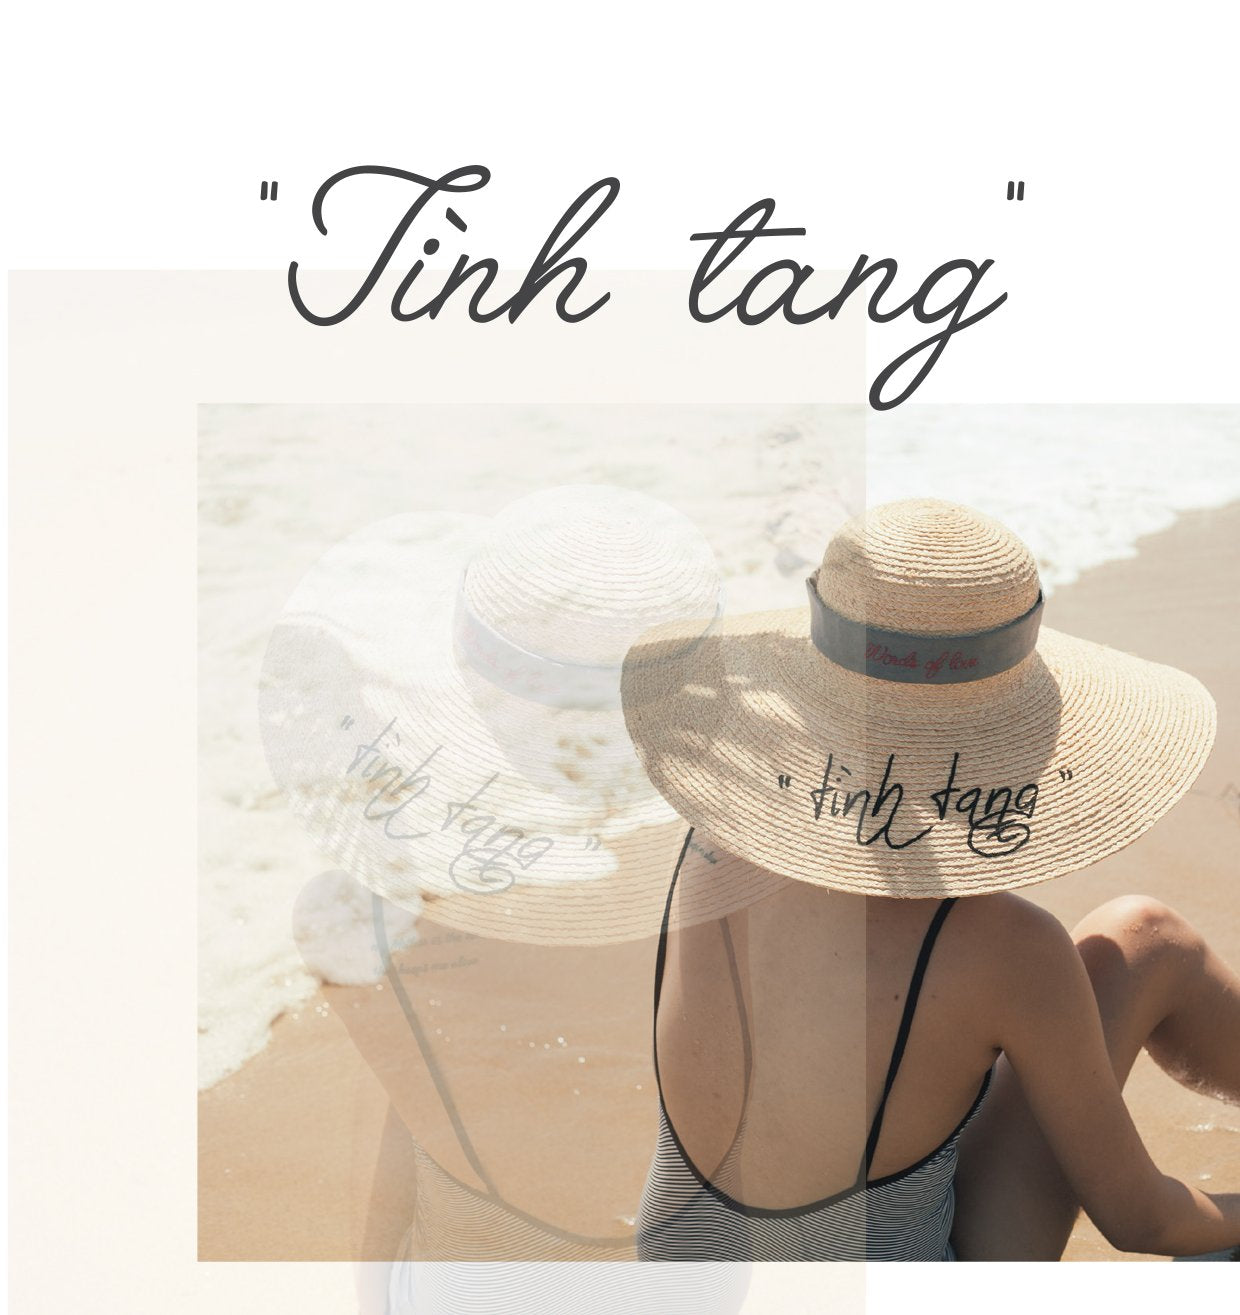 words_of_love_tinh_tang_beach_hat_producer_vietnam_-_leinne